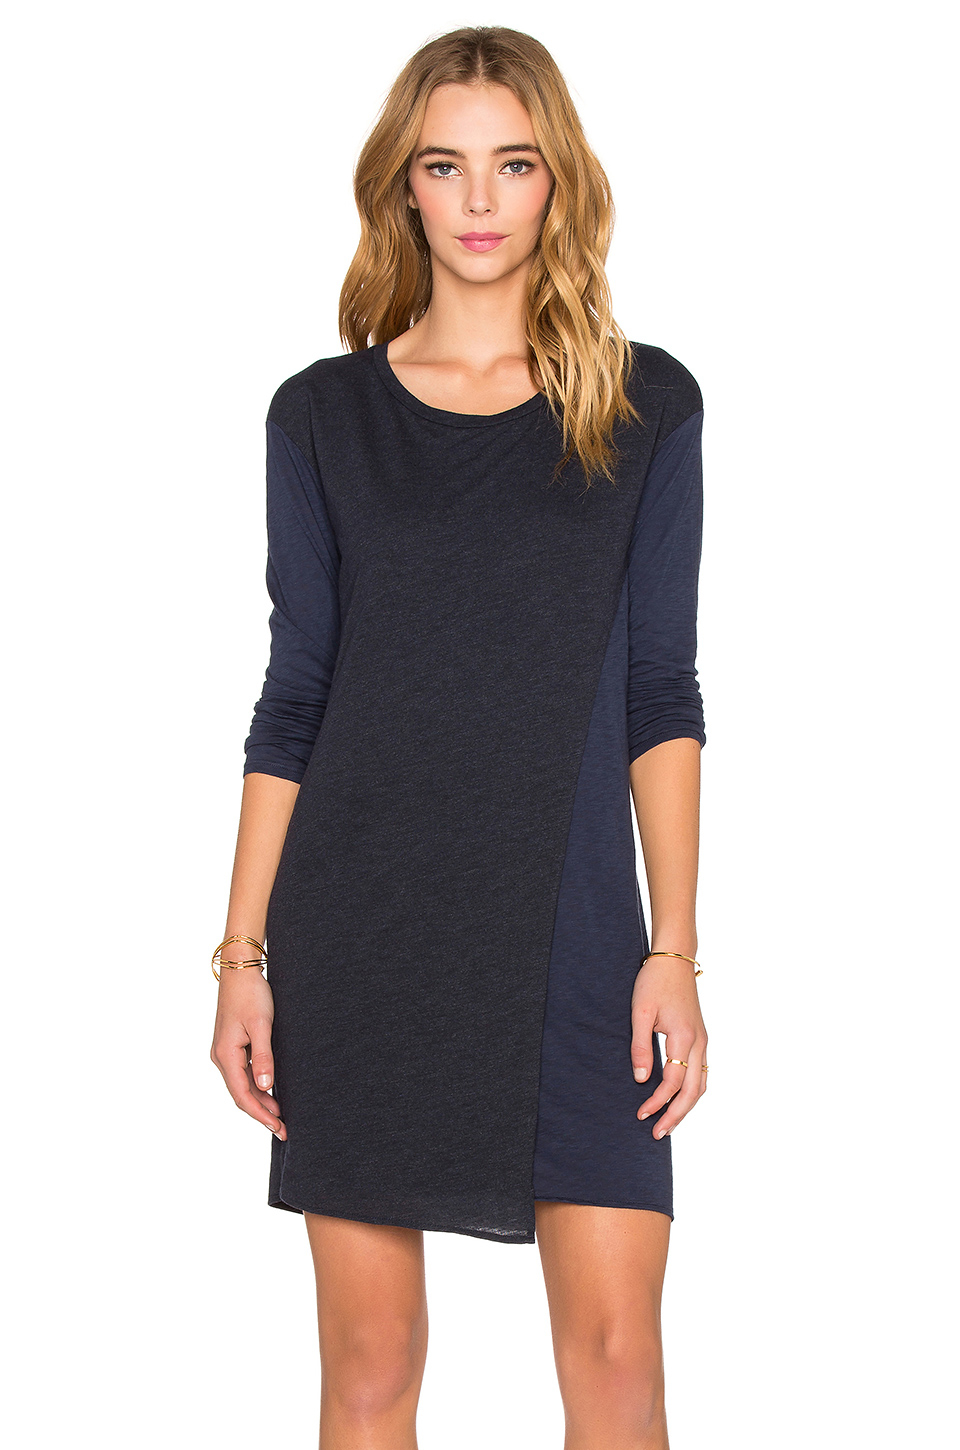 Find long t shirt dress at ShopStyle. Shop the latest collection of long t shirt dress from the most popular stores - all in one place.